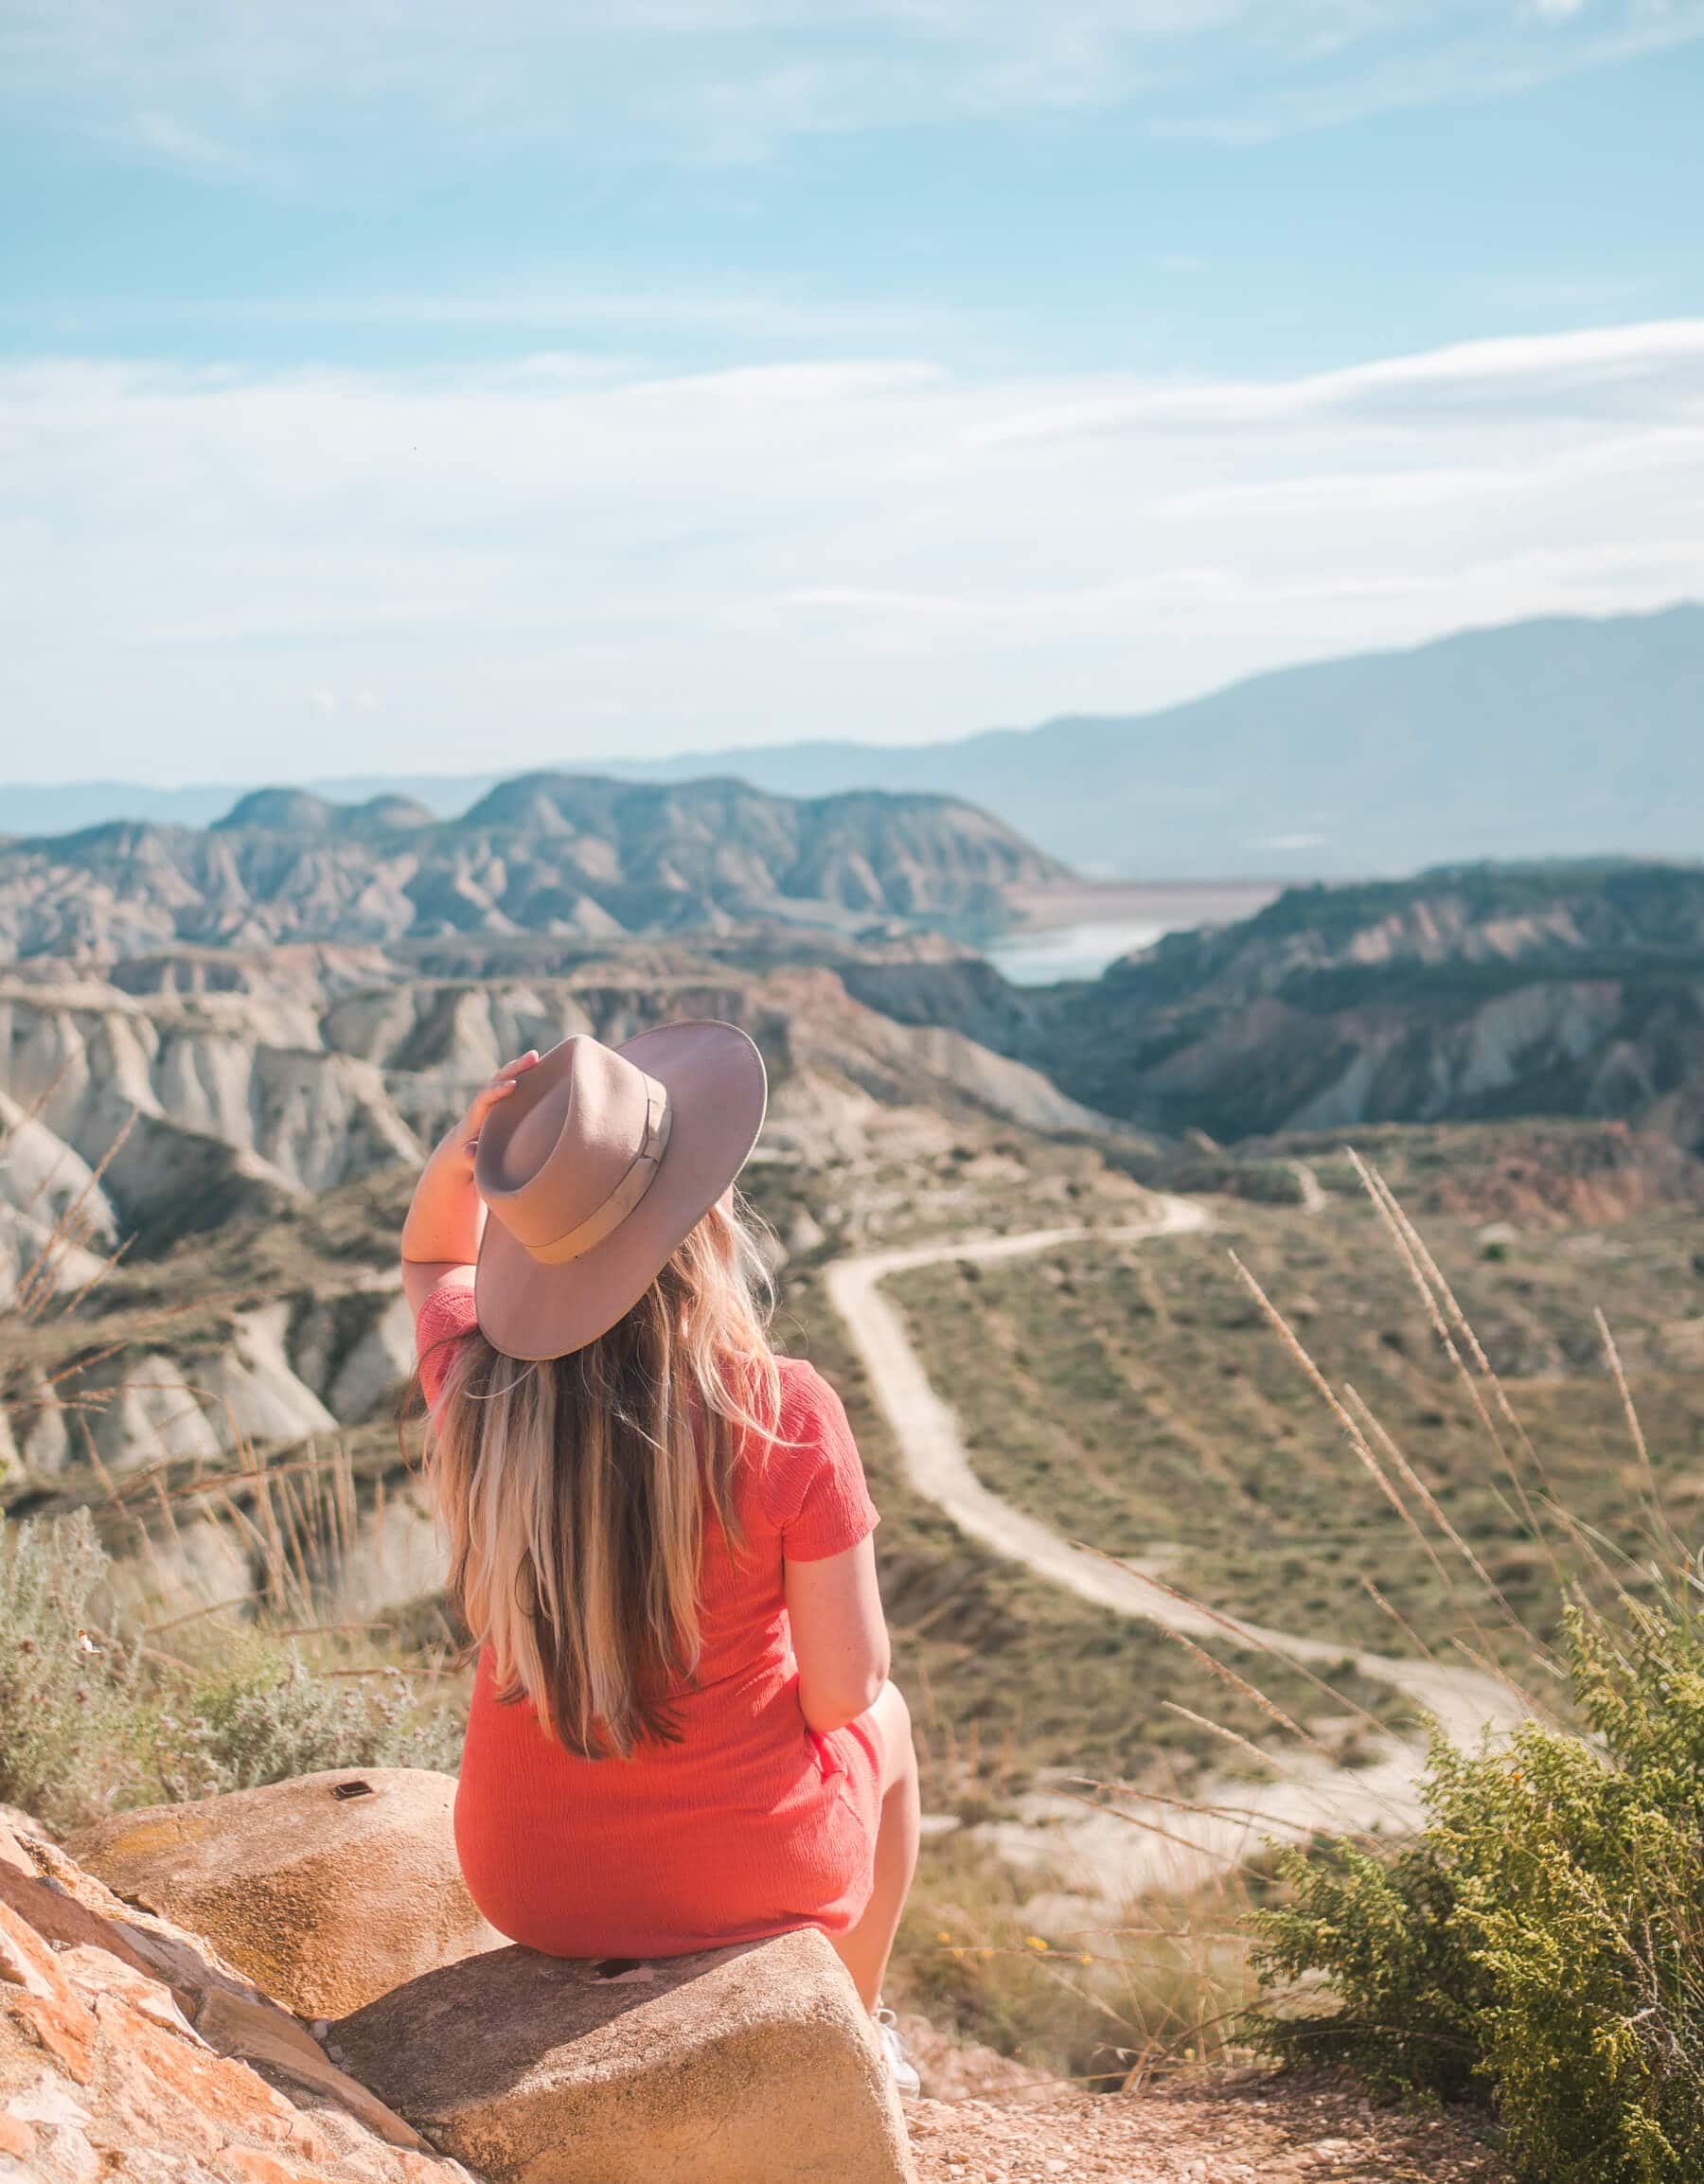 Mirador Barrancos de Gebas (also known as the Lunar Badlands) in Murcia, one of Spain's most beautiful natural wonders. One of the top things to do in Spain